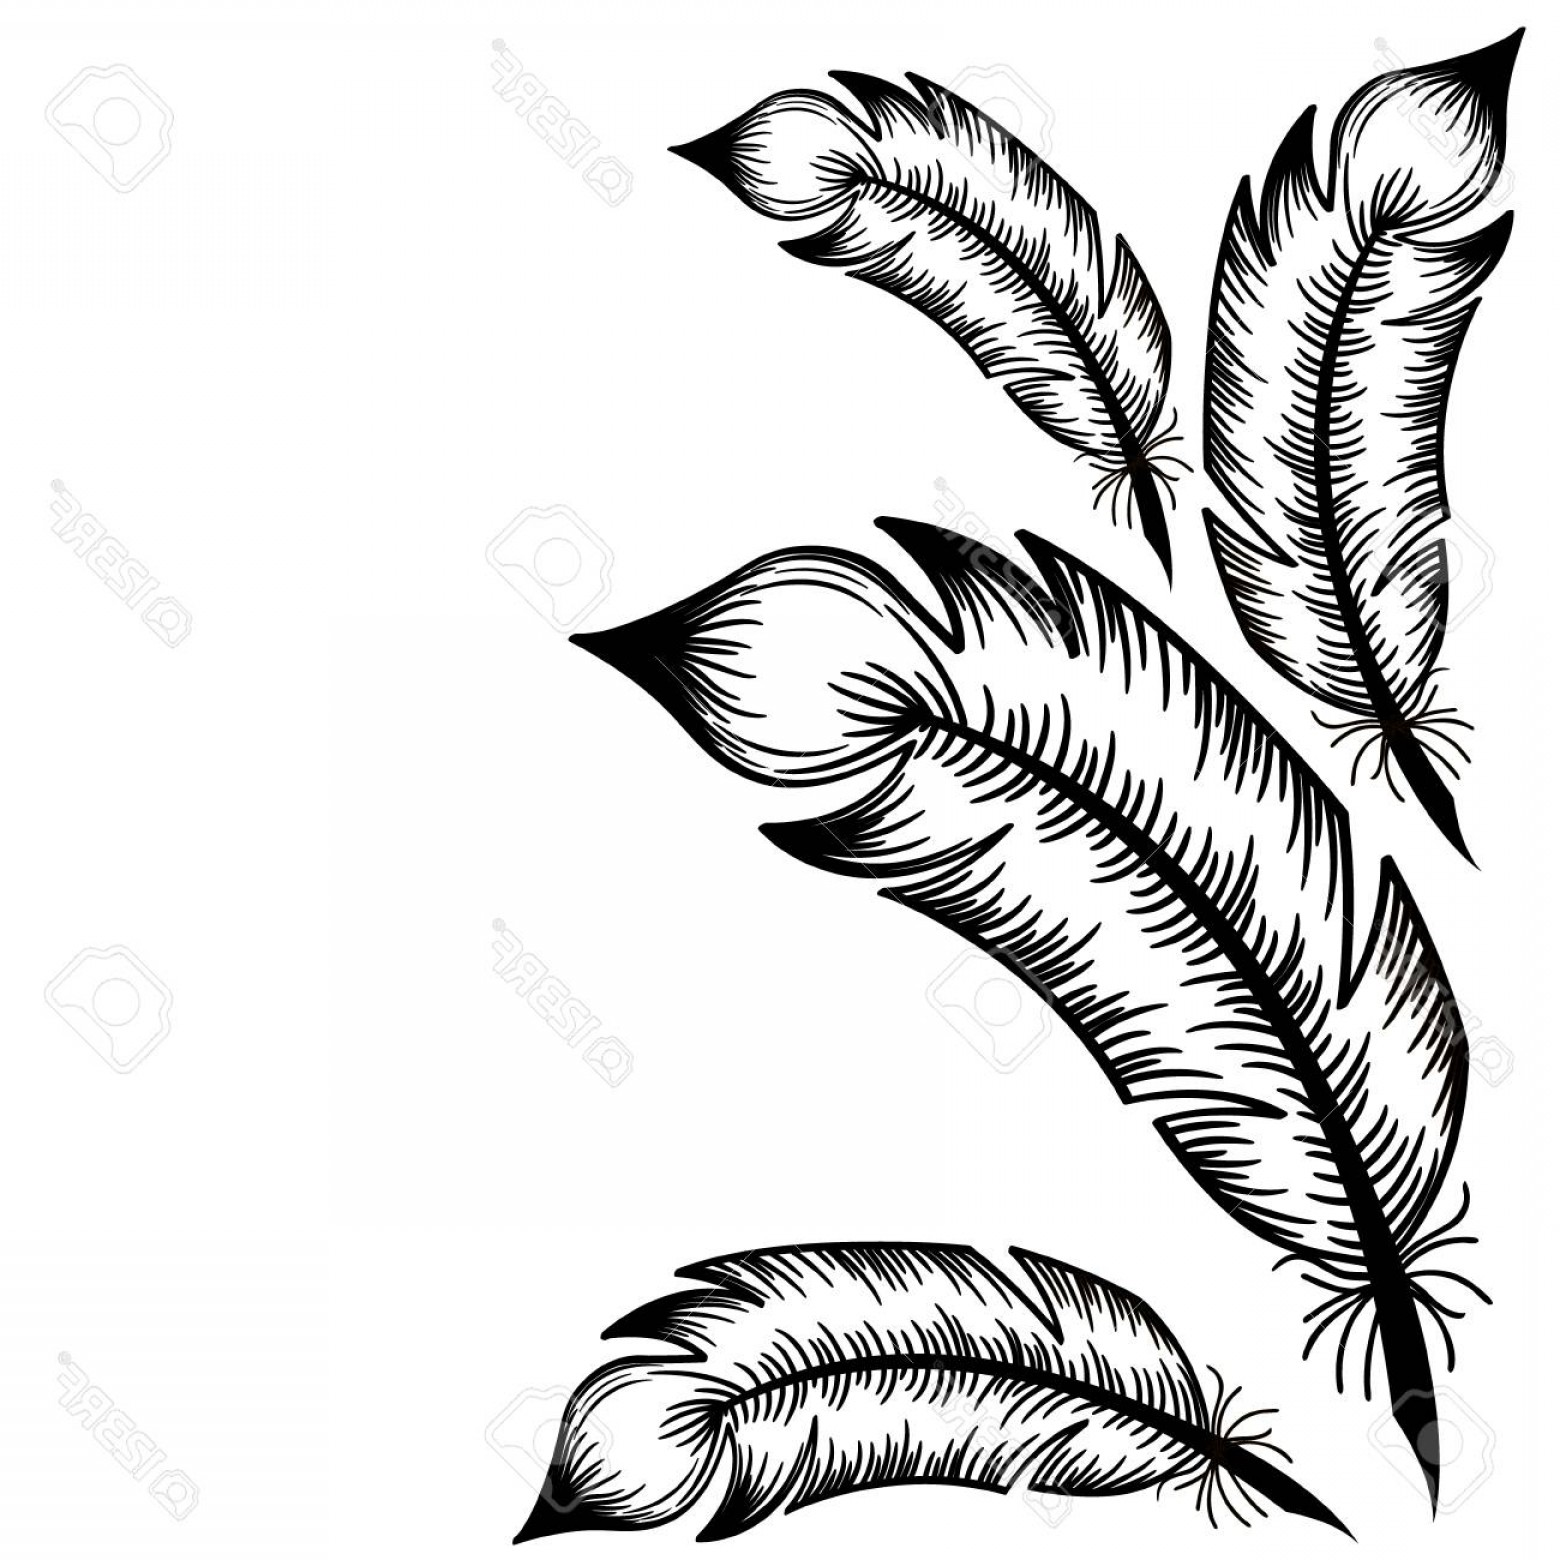 Vector Drawing Feathers: Photostock Vector Drawing Of Black Feathers On A White Background Vector Sticker